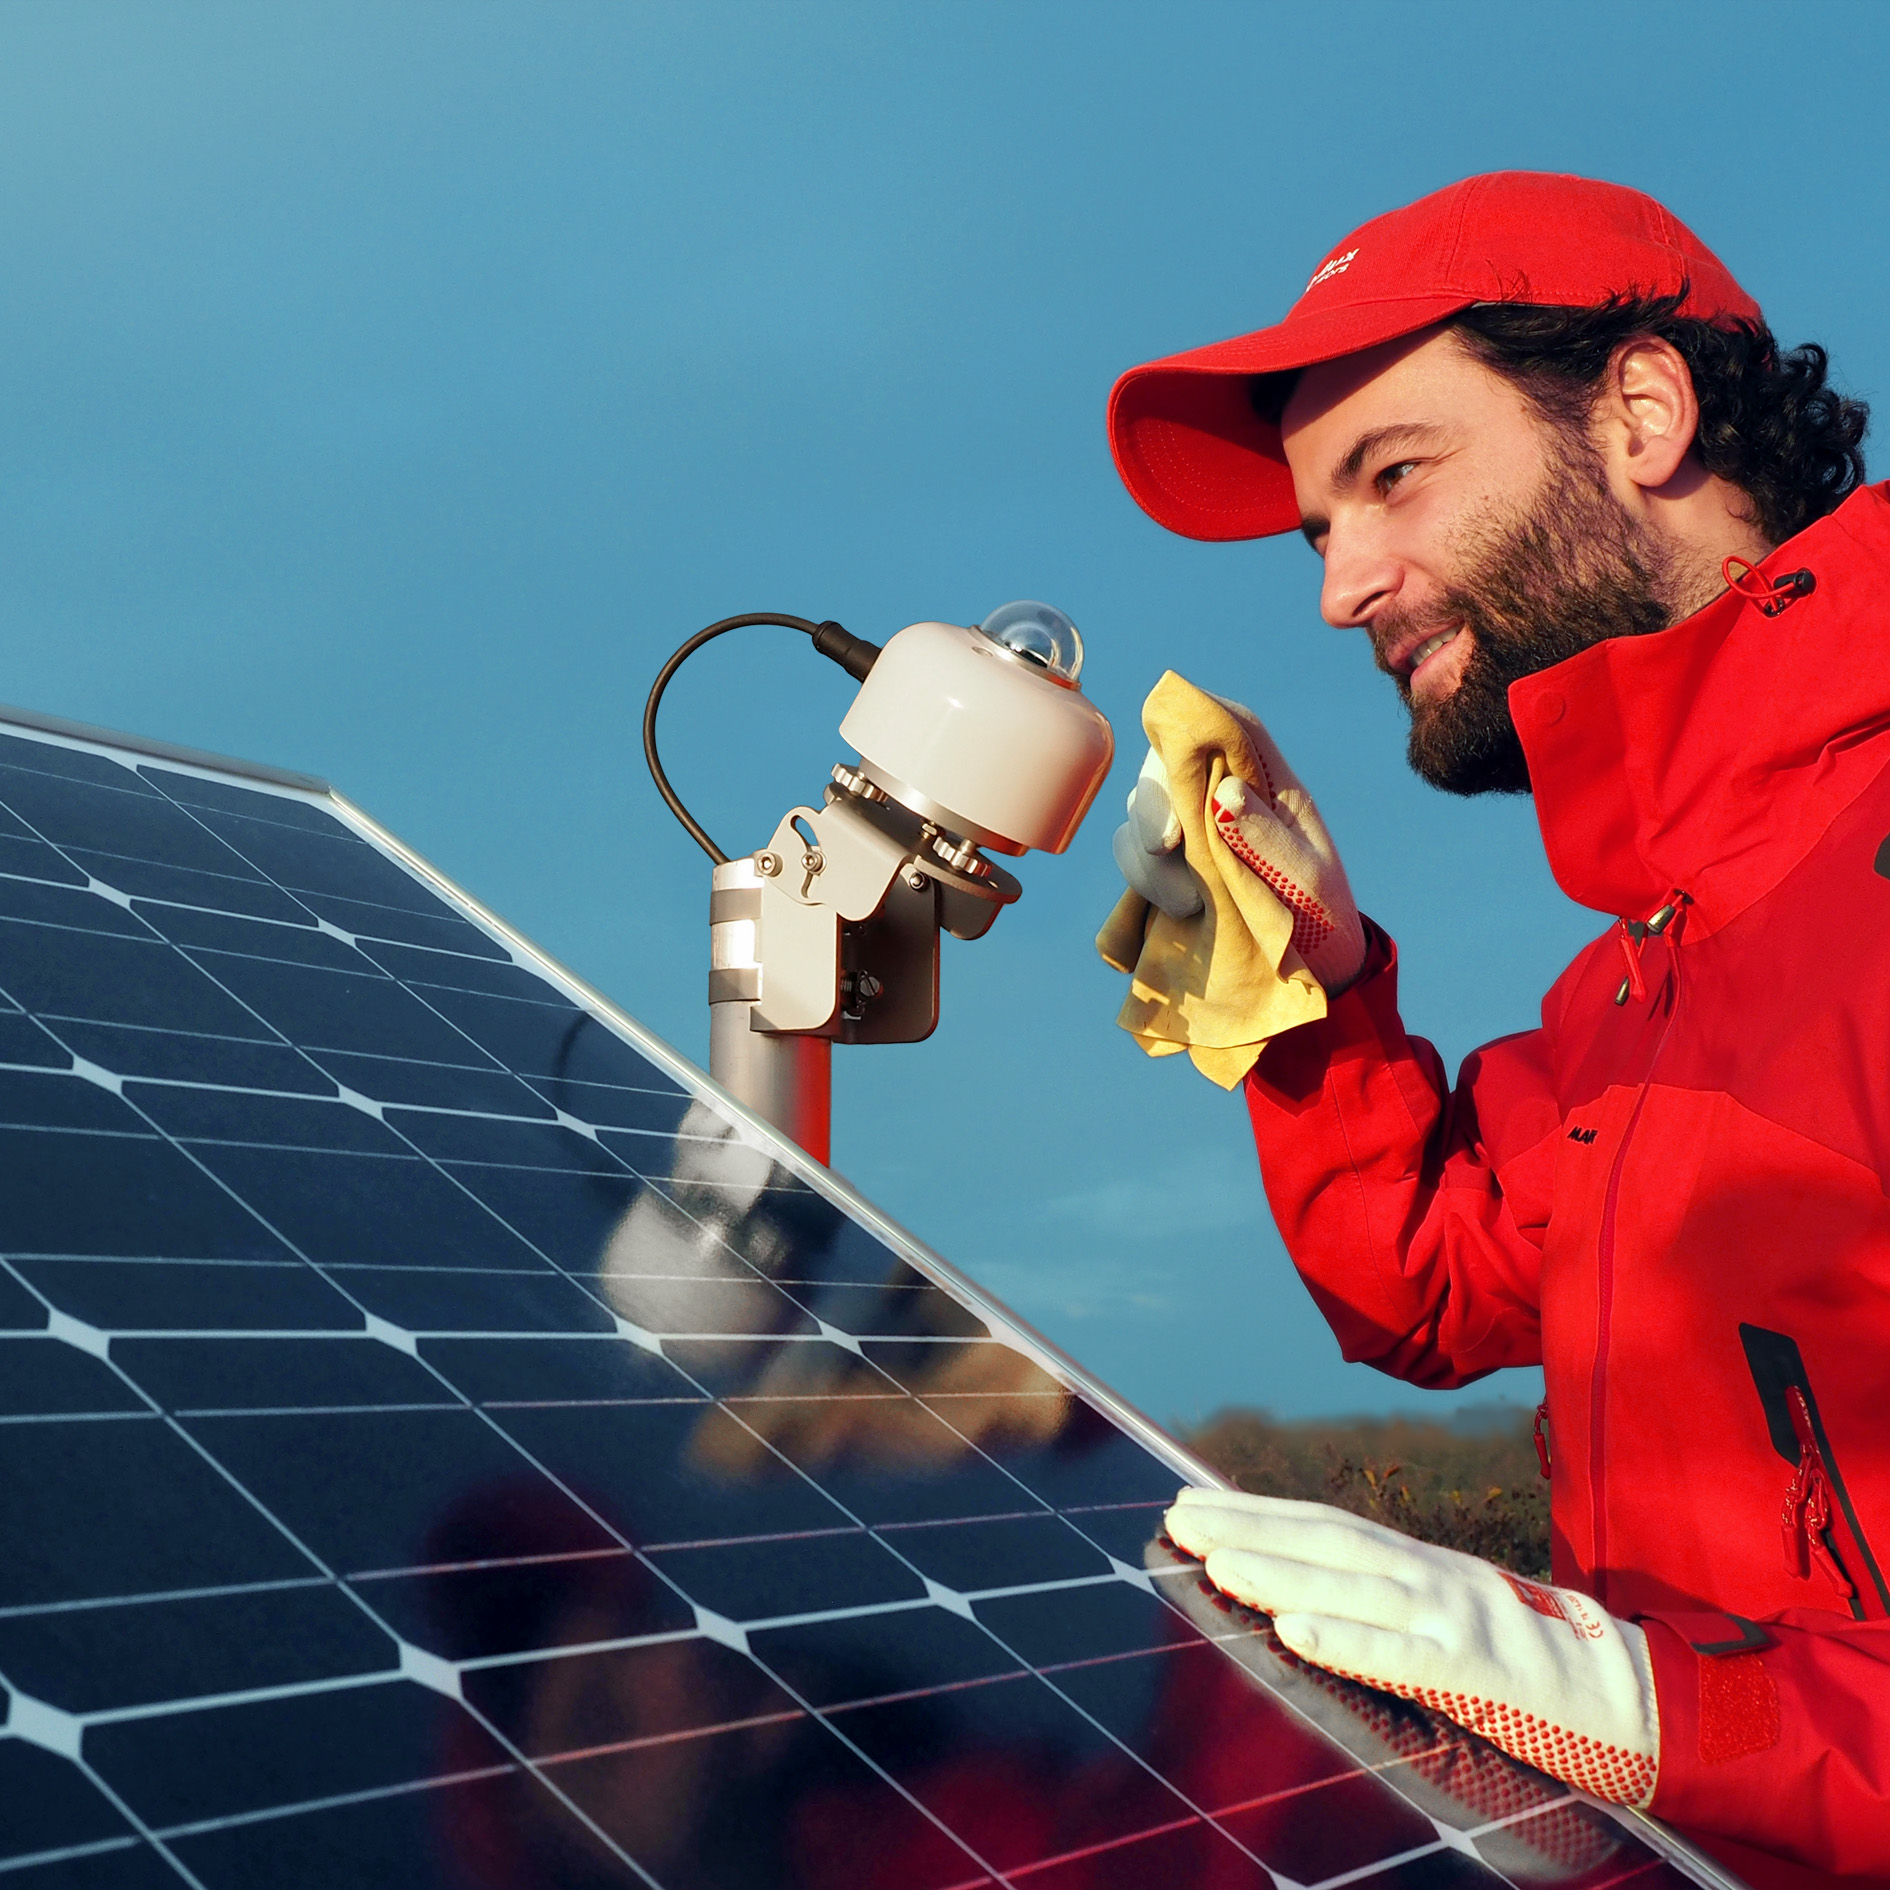 pyranometers can be used to monitor the performance of photovoltaic systems